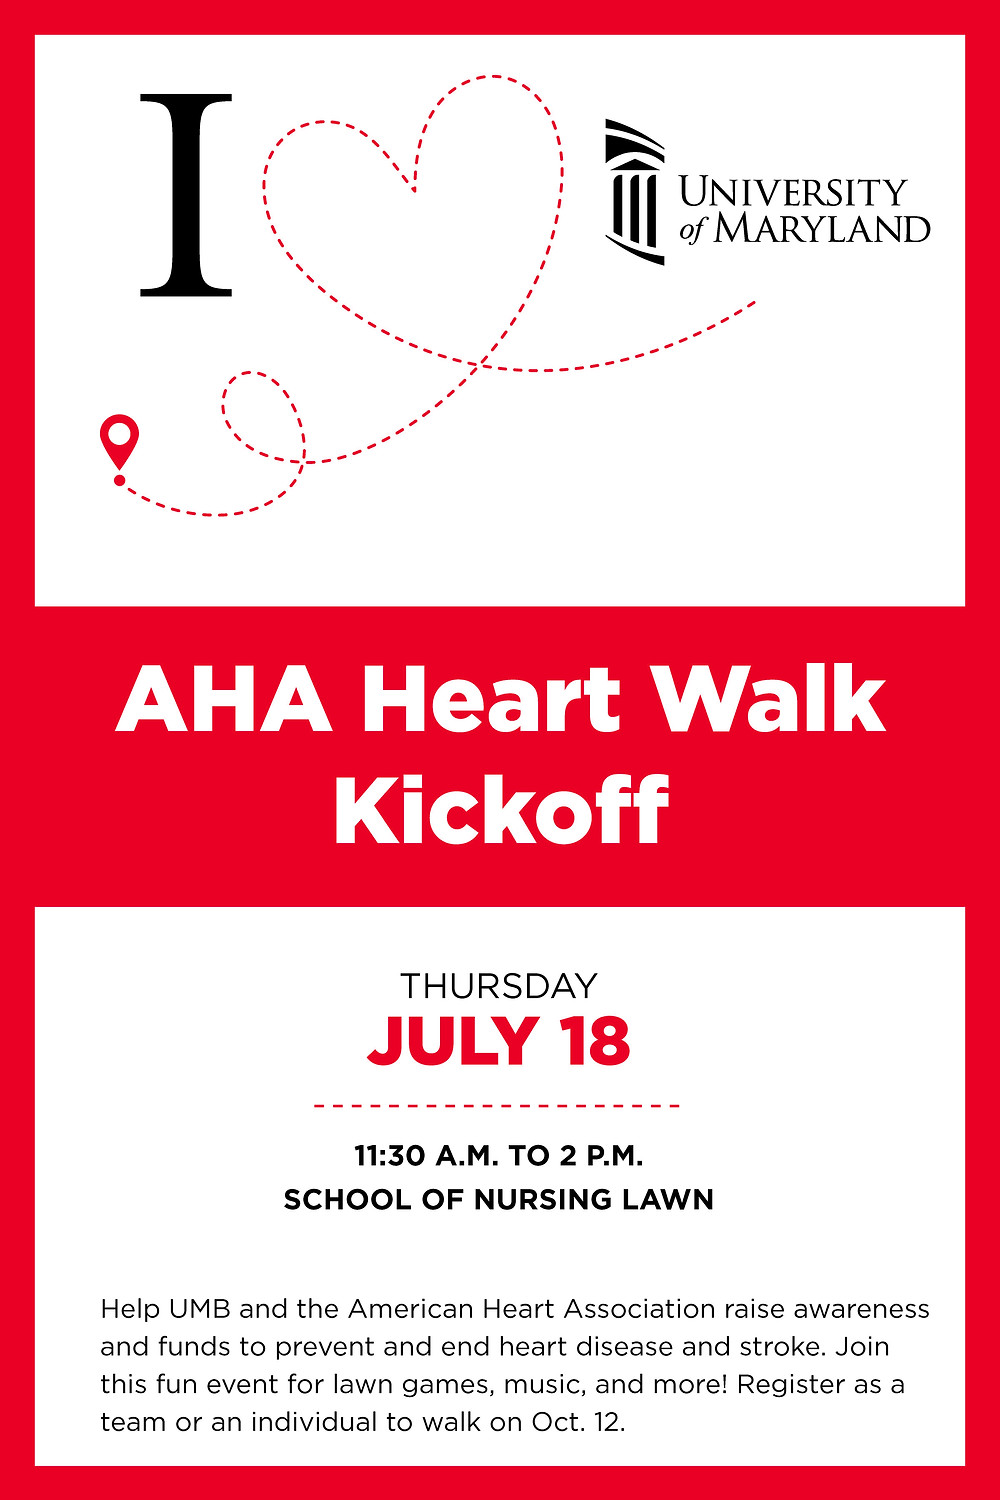 Help UMB and the American Heart Association raise awareness and funds to prevent and end heart disease and stroke. Join this fun event for lawn games, music, and more! Register as a team or an individual to walk on Oct. 12. T